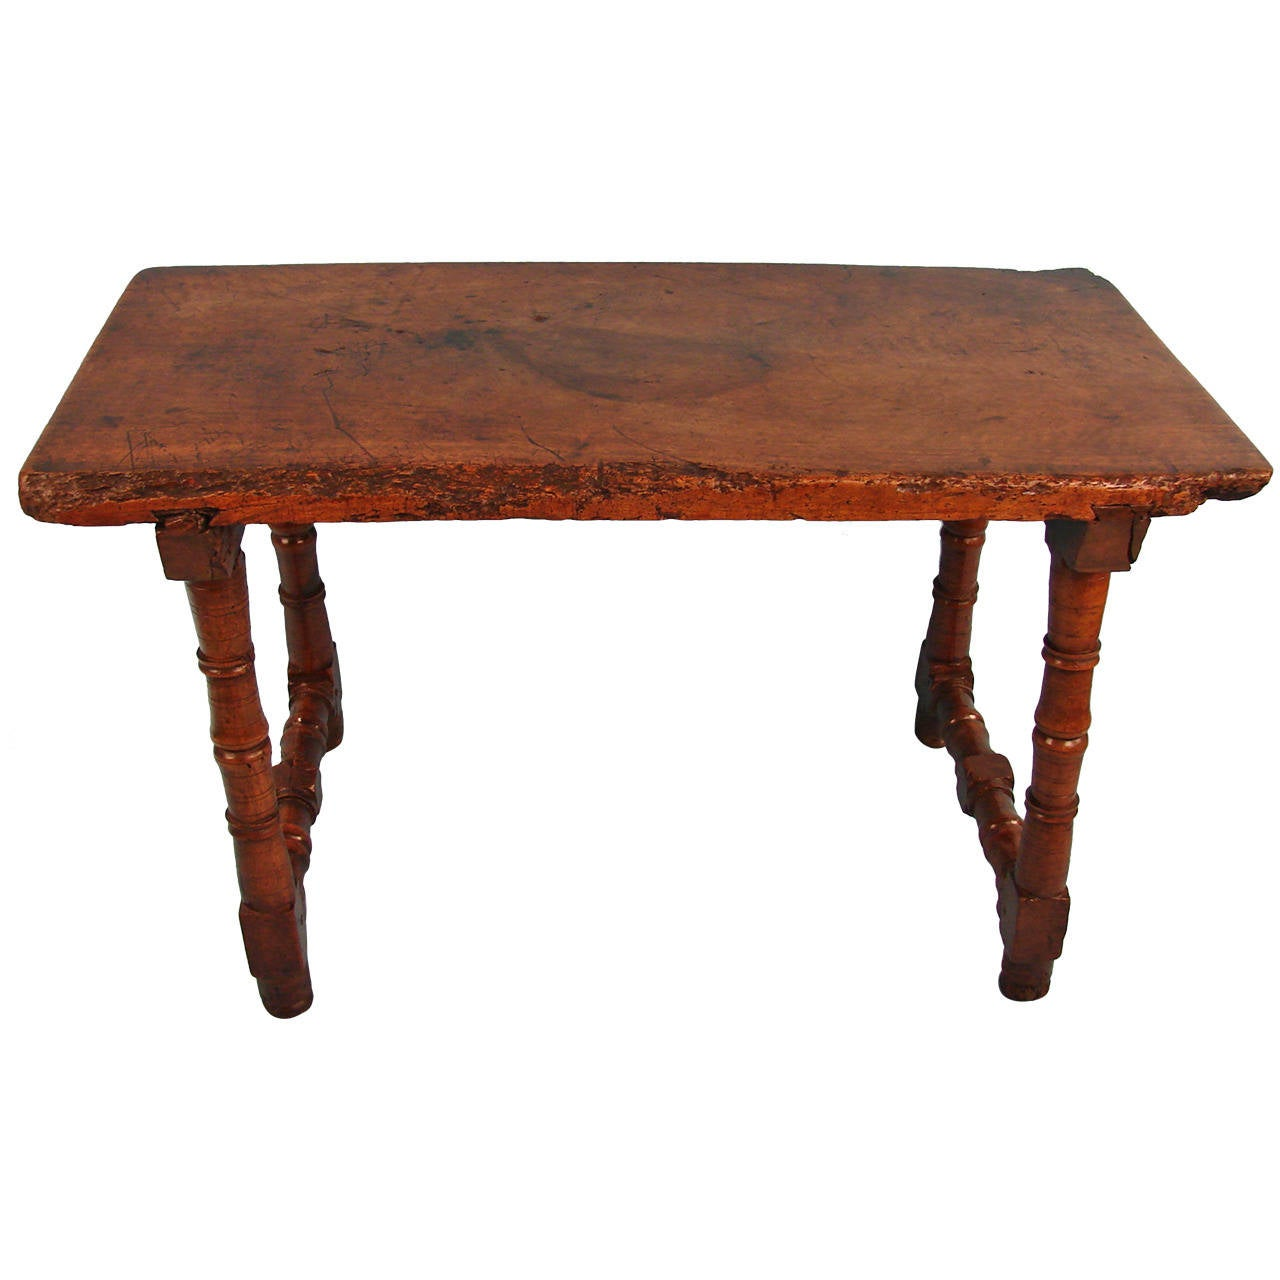 Spanish baroque walnut table at 1stdibs for Ptable in spanish